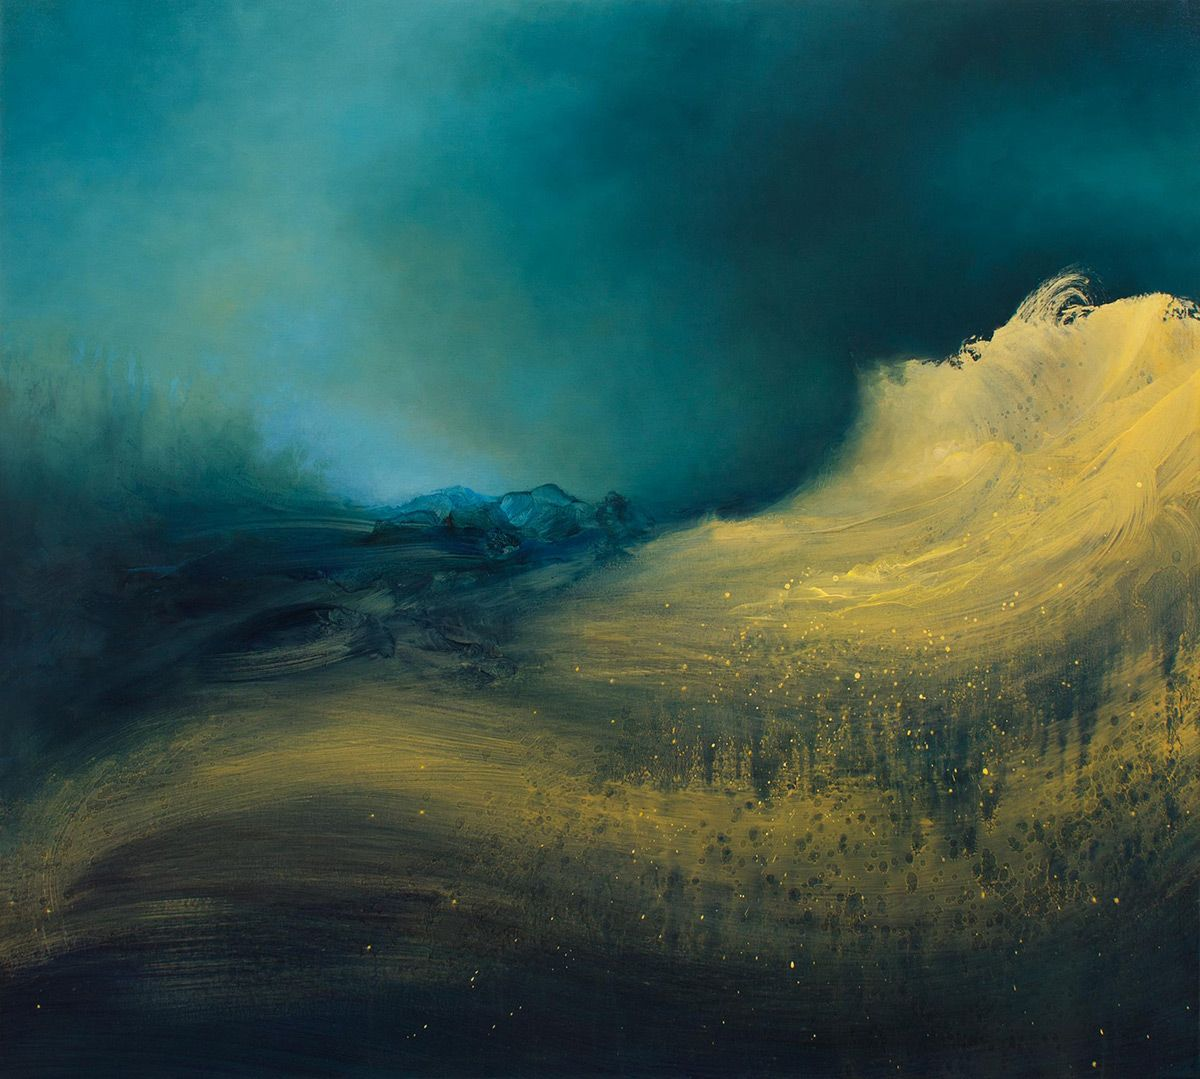 Internal Landscapes: Sweeping Abstract Oceans by Samantha Keely Smith  http://www.thisiscolossal.com/2014/04/internal-landscapes-samantha-keely-smith/